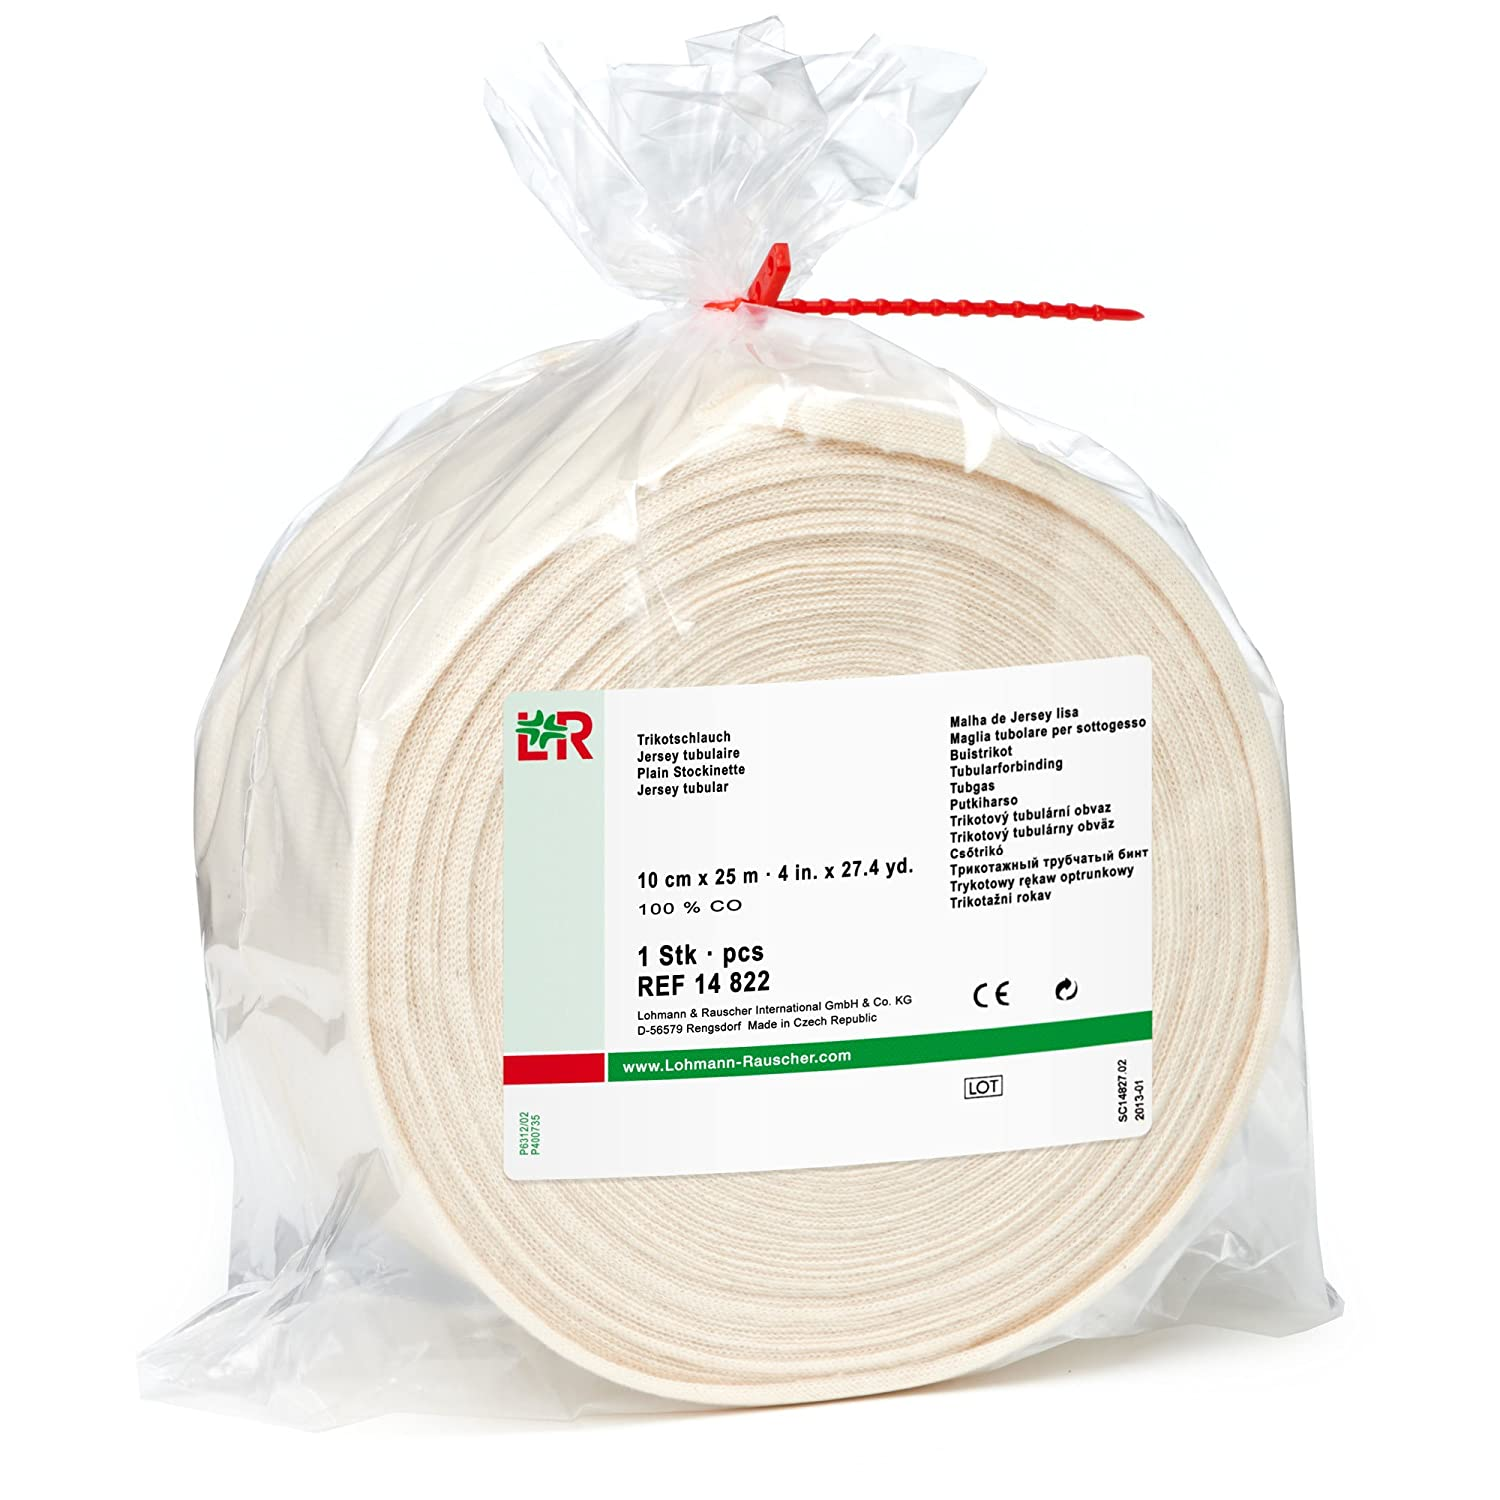 Lohmann Bombing free shipping Manufacturer direct delivery Rauscher-25758tg Cotton Tubul Stockinette 100%